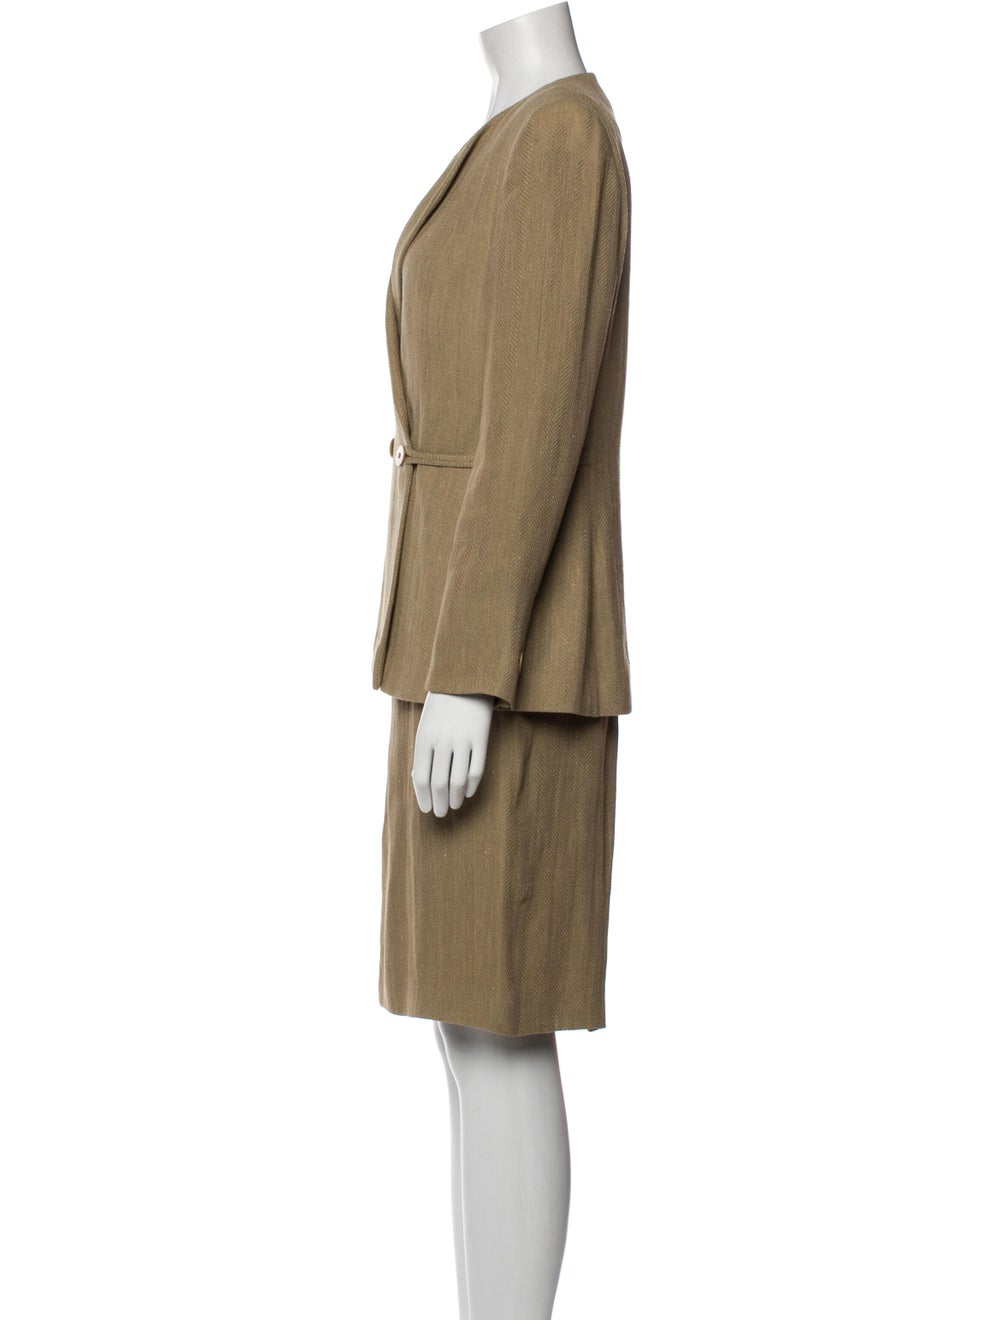 Giorgio Armani Linen Patterned Skirt Suit - image 2